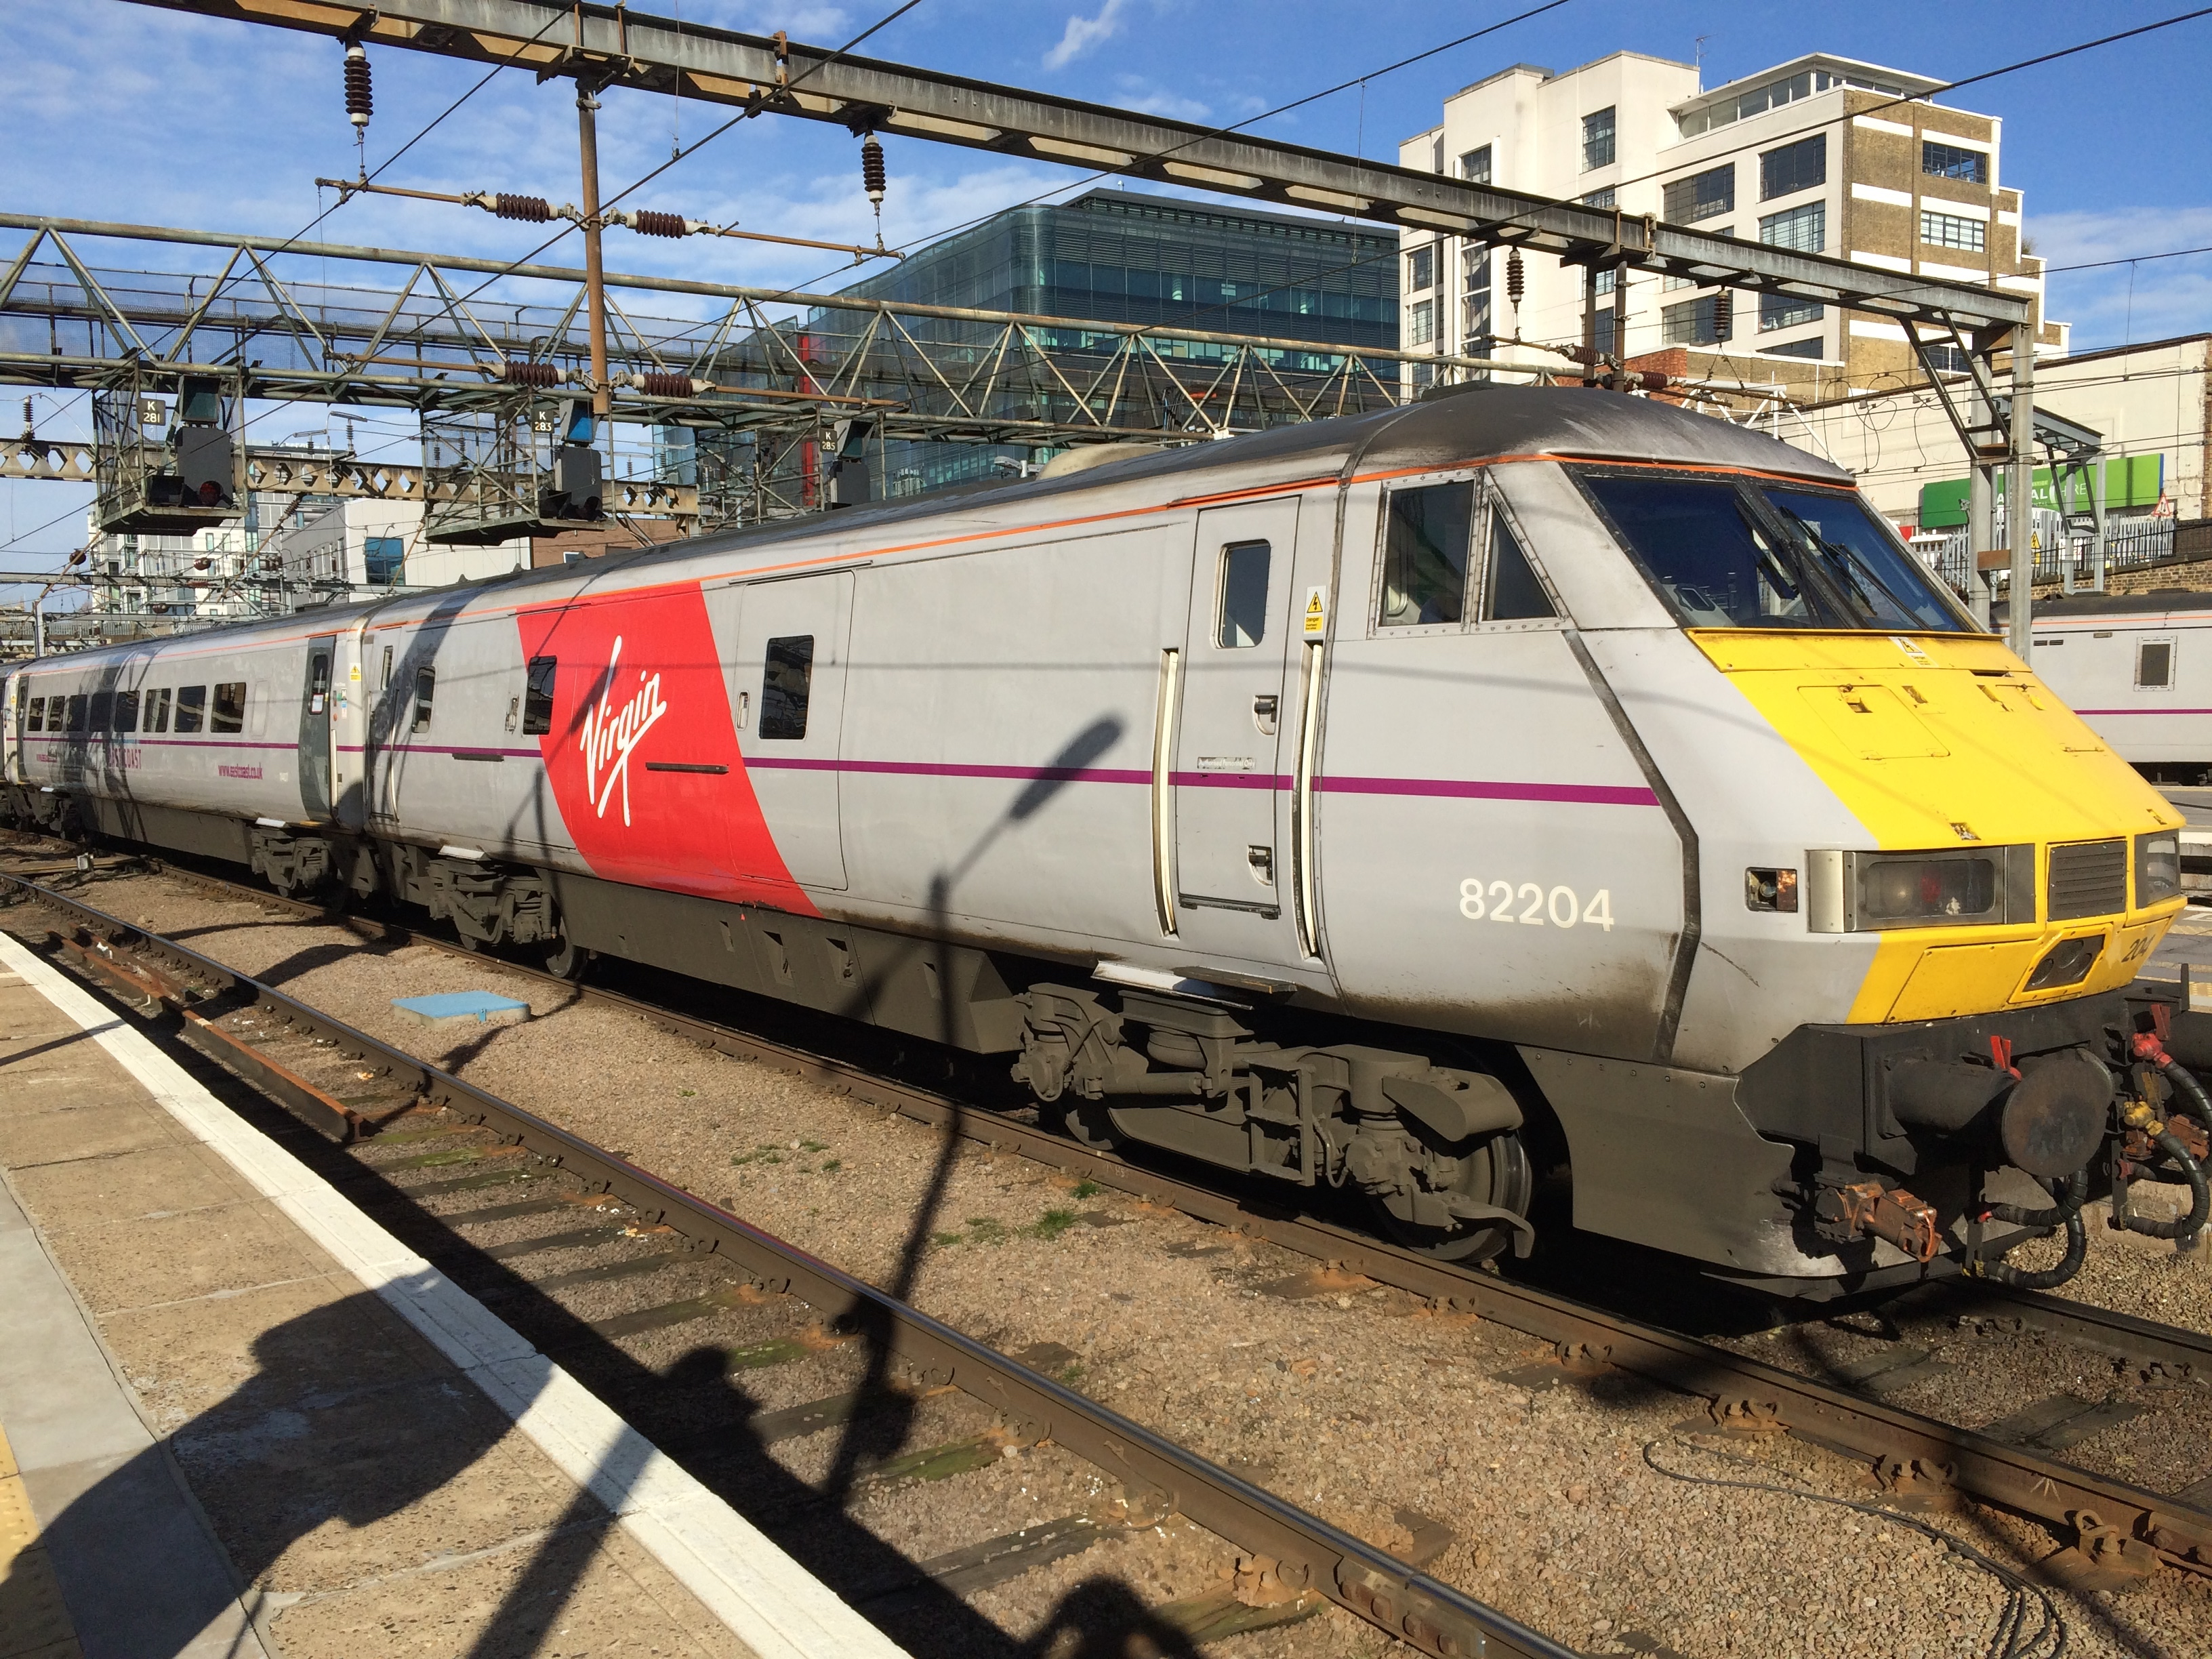 Virgin East Coadt To Newcastle Free Drink And Sbacks